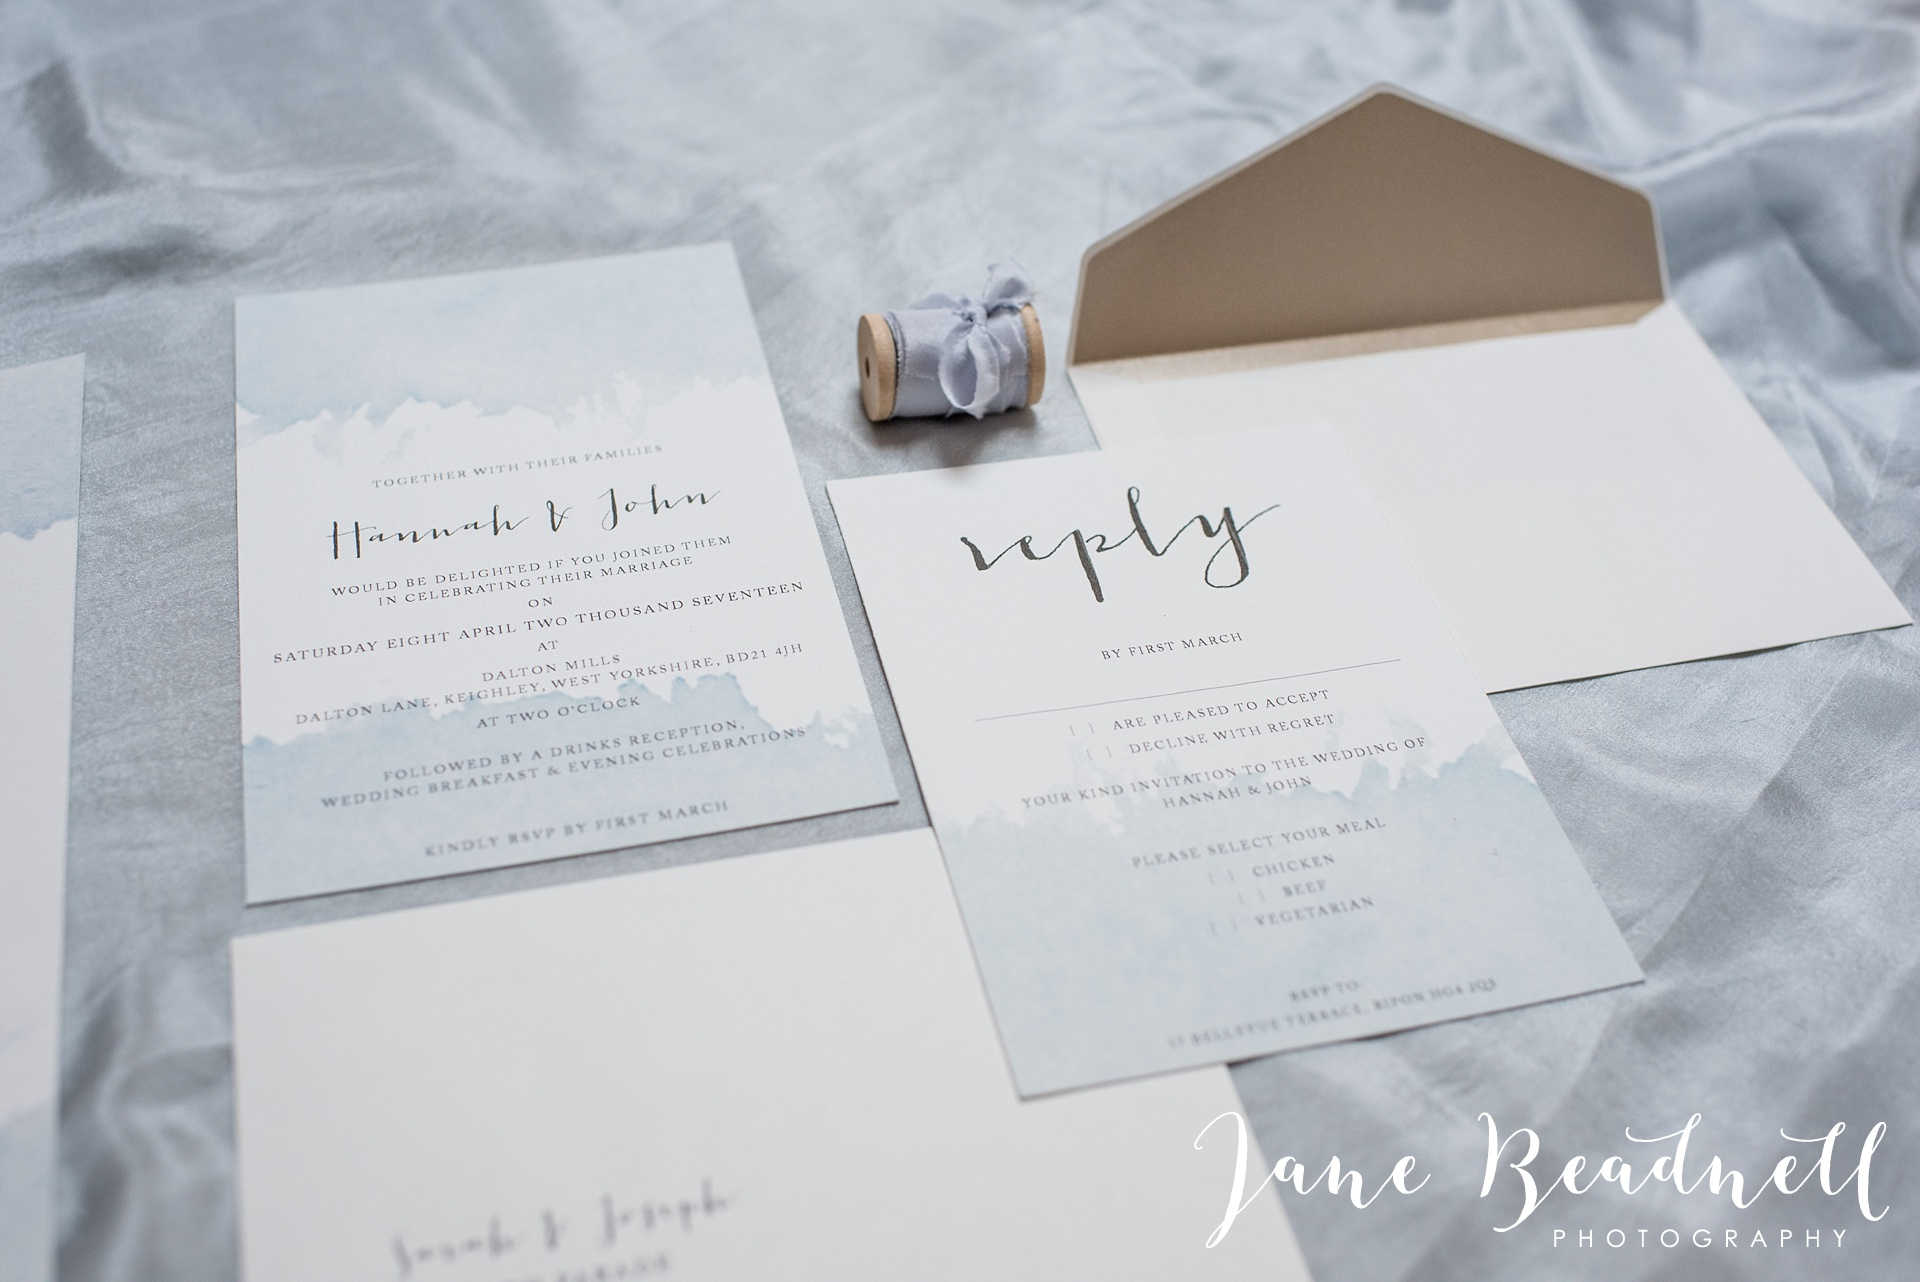 Ballet themed styled wedding shoot at Dalton Mills by Jane Beadnell Photography-0_0087